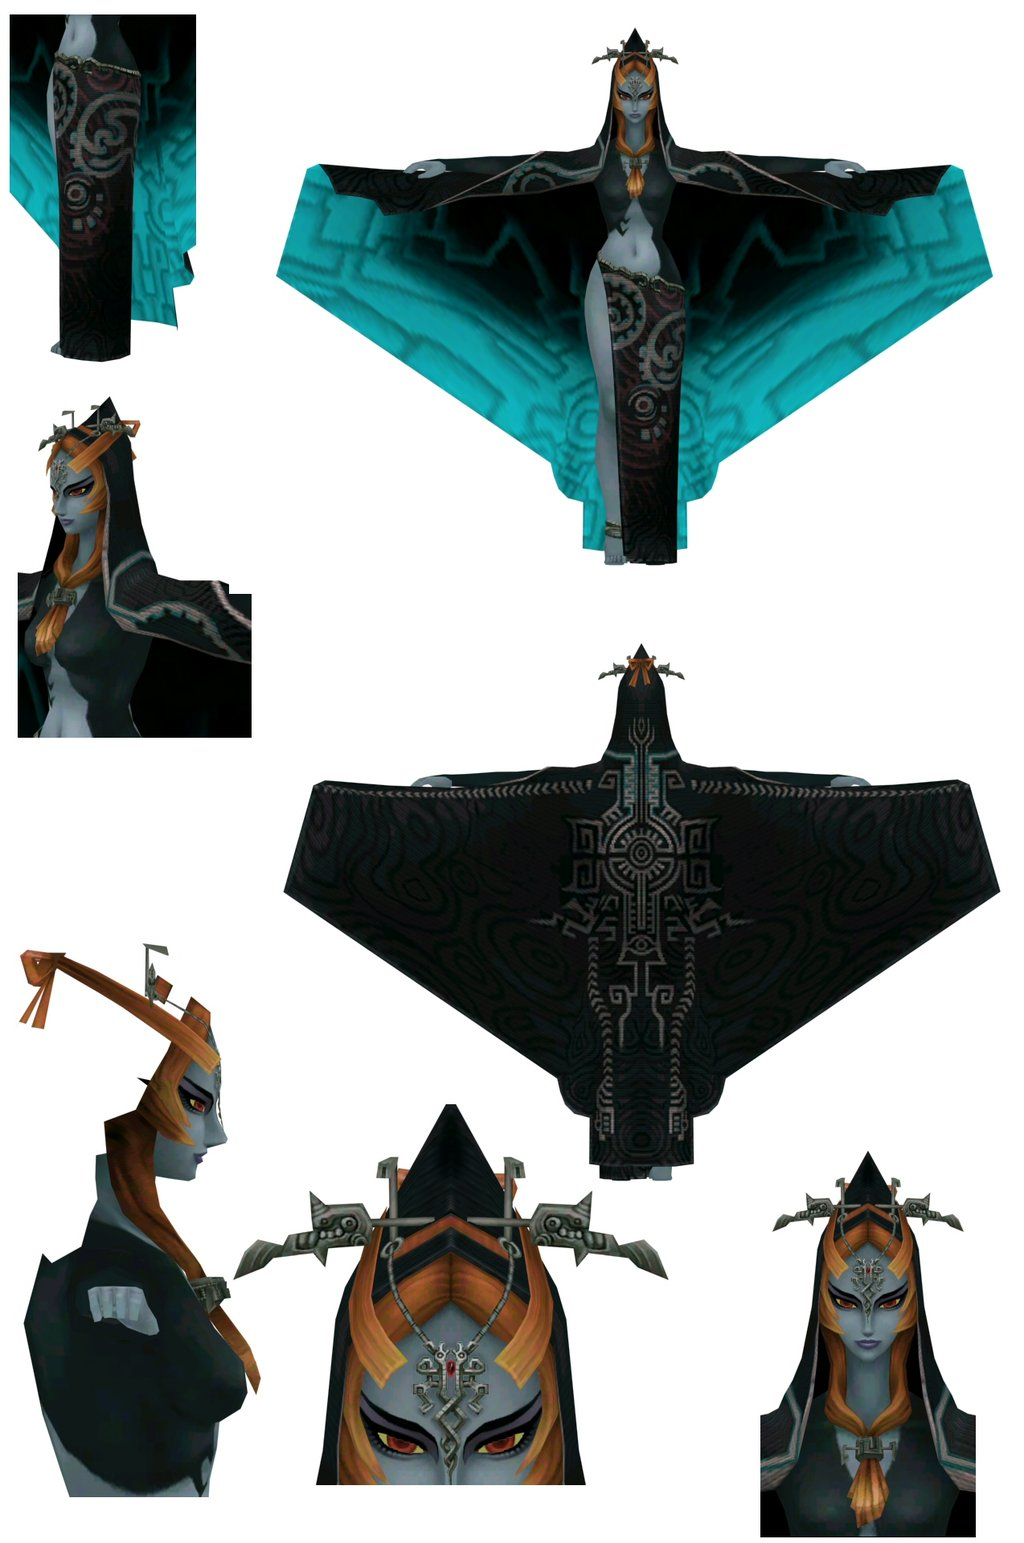 Midna (True Form) - Twilight Princess (Game) | page 2 of 4 ...